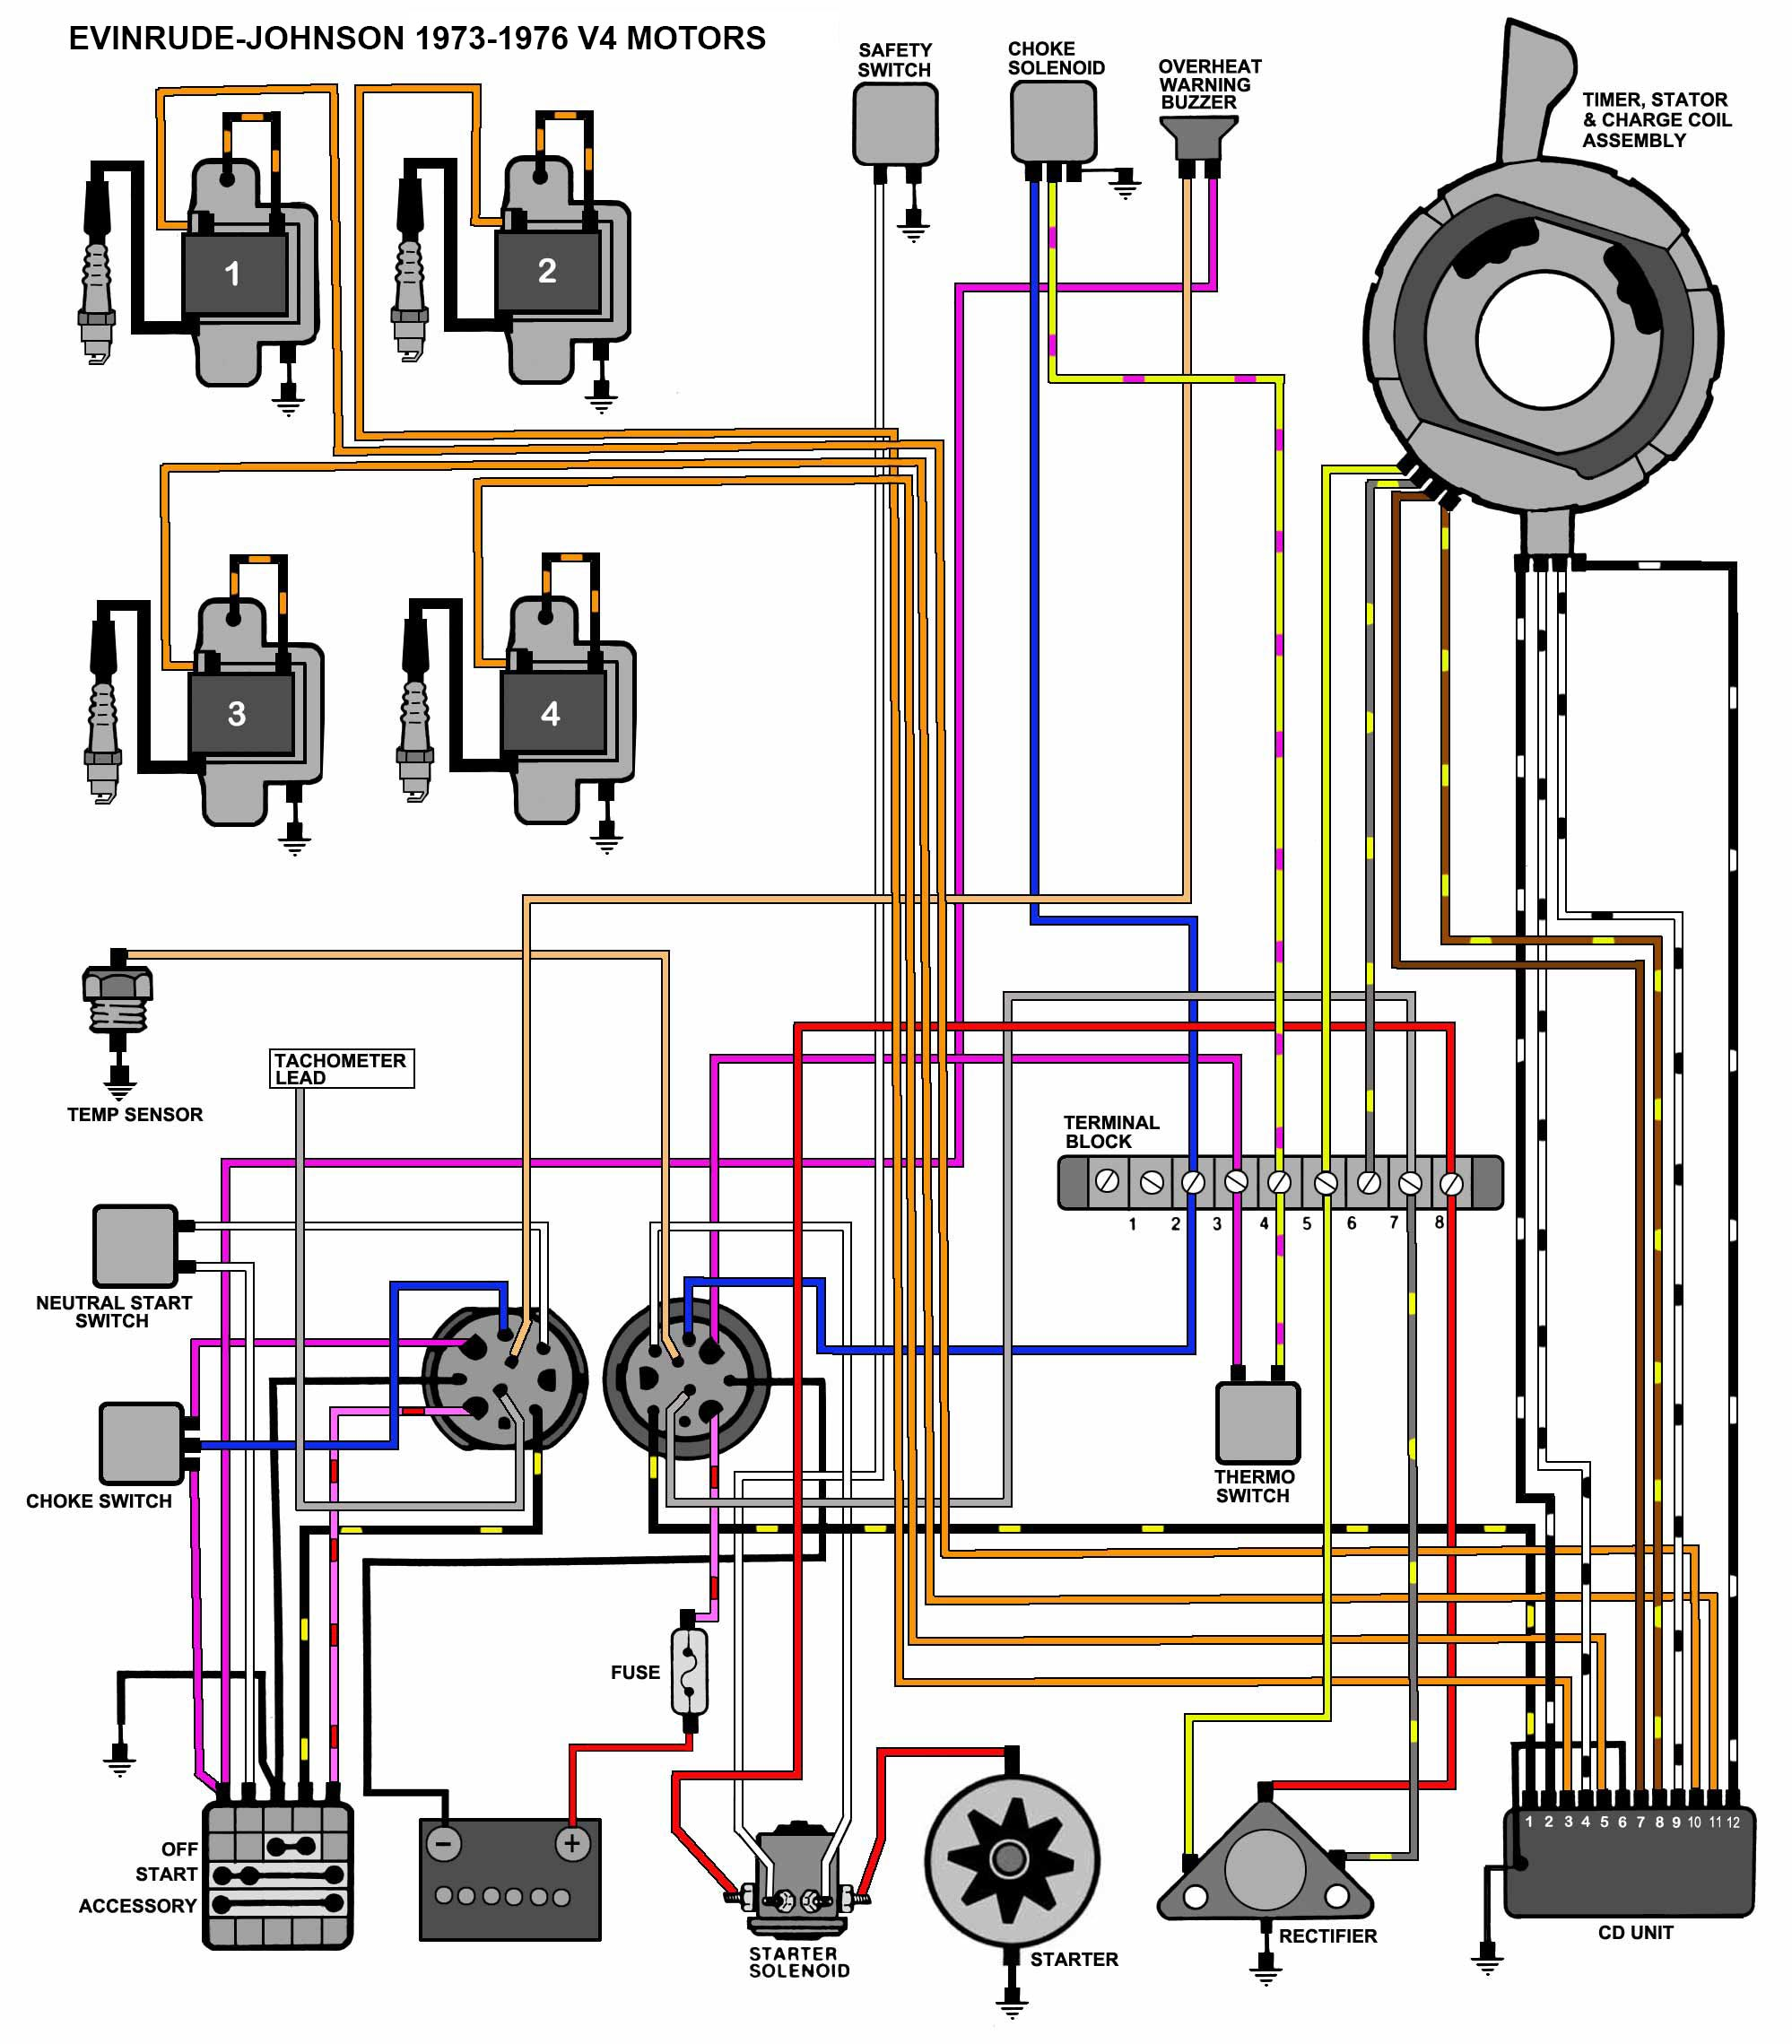 Evinrude Engine Schematics | Wiring Diagram on four stroke diagram, 4 stroke cars, 4 stroke transmission, compression stroke diagram, 2 stroke engine diagram, 4 stroke timing, piston cylinder head diagram, 4 stroke rc engines, simple piston diagram, 6 stroke engine diagram, 4 stroke sound, two stroke diagram, 4 stroke oil, single stroke engine diagram, 4 stroke mercury outboard parts, 4 stroke motor, 4 stroke snowmobile engines, 4 stroke atv, 4 stroke ignition coil, 4 stroke vs 2 stroke meme,